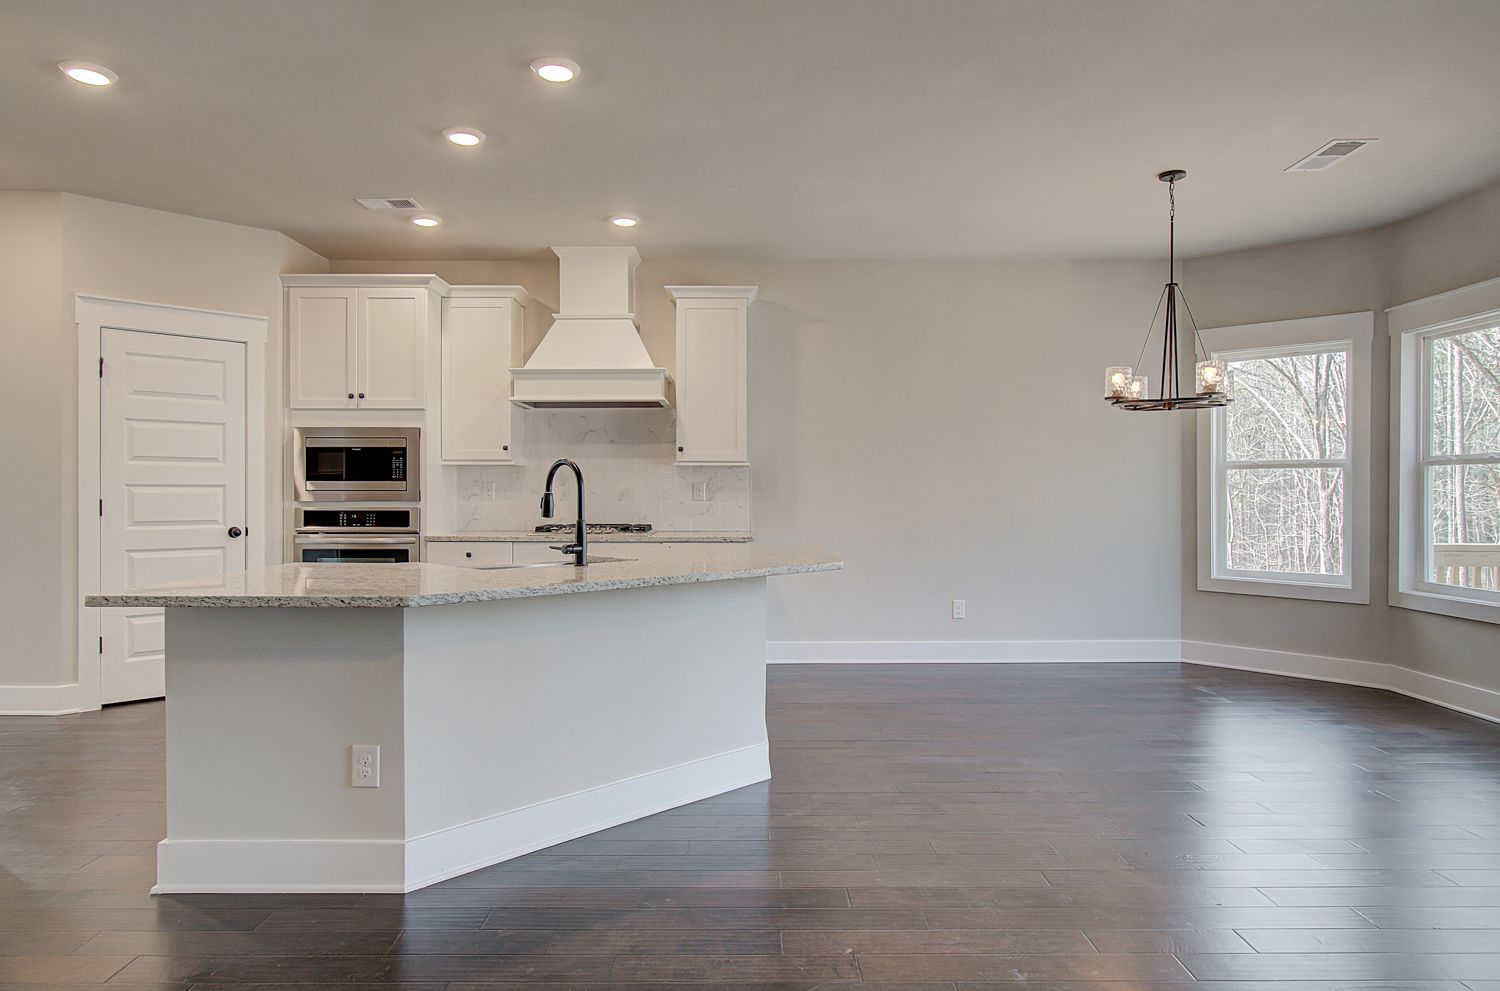 Kitchen featured in The Chatham By Knight Homes in Atlanta, GA